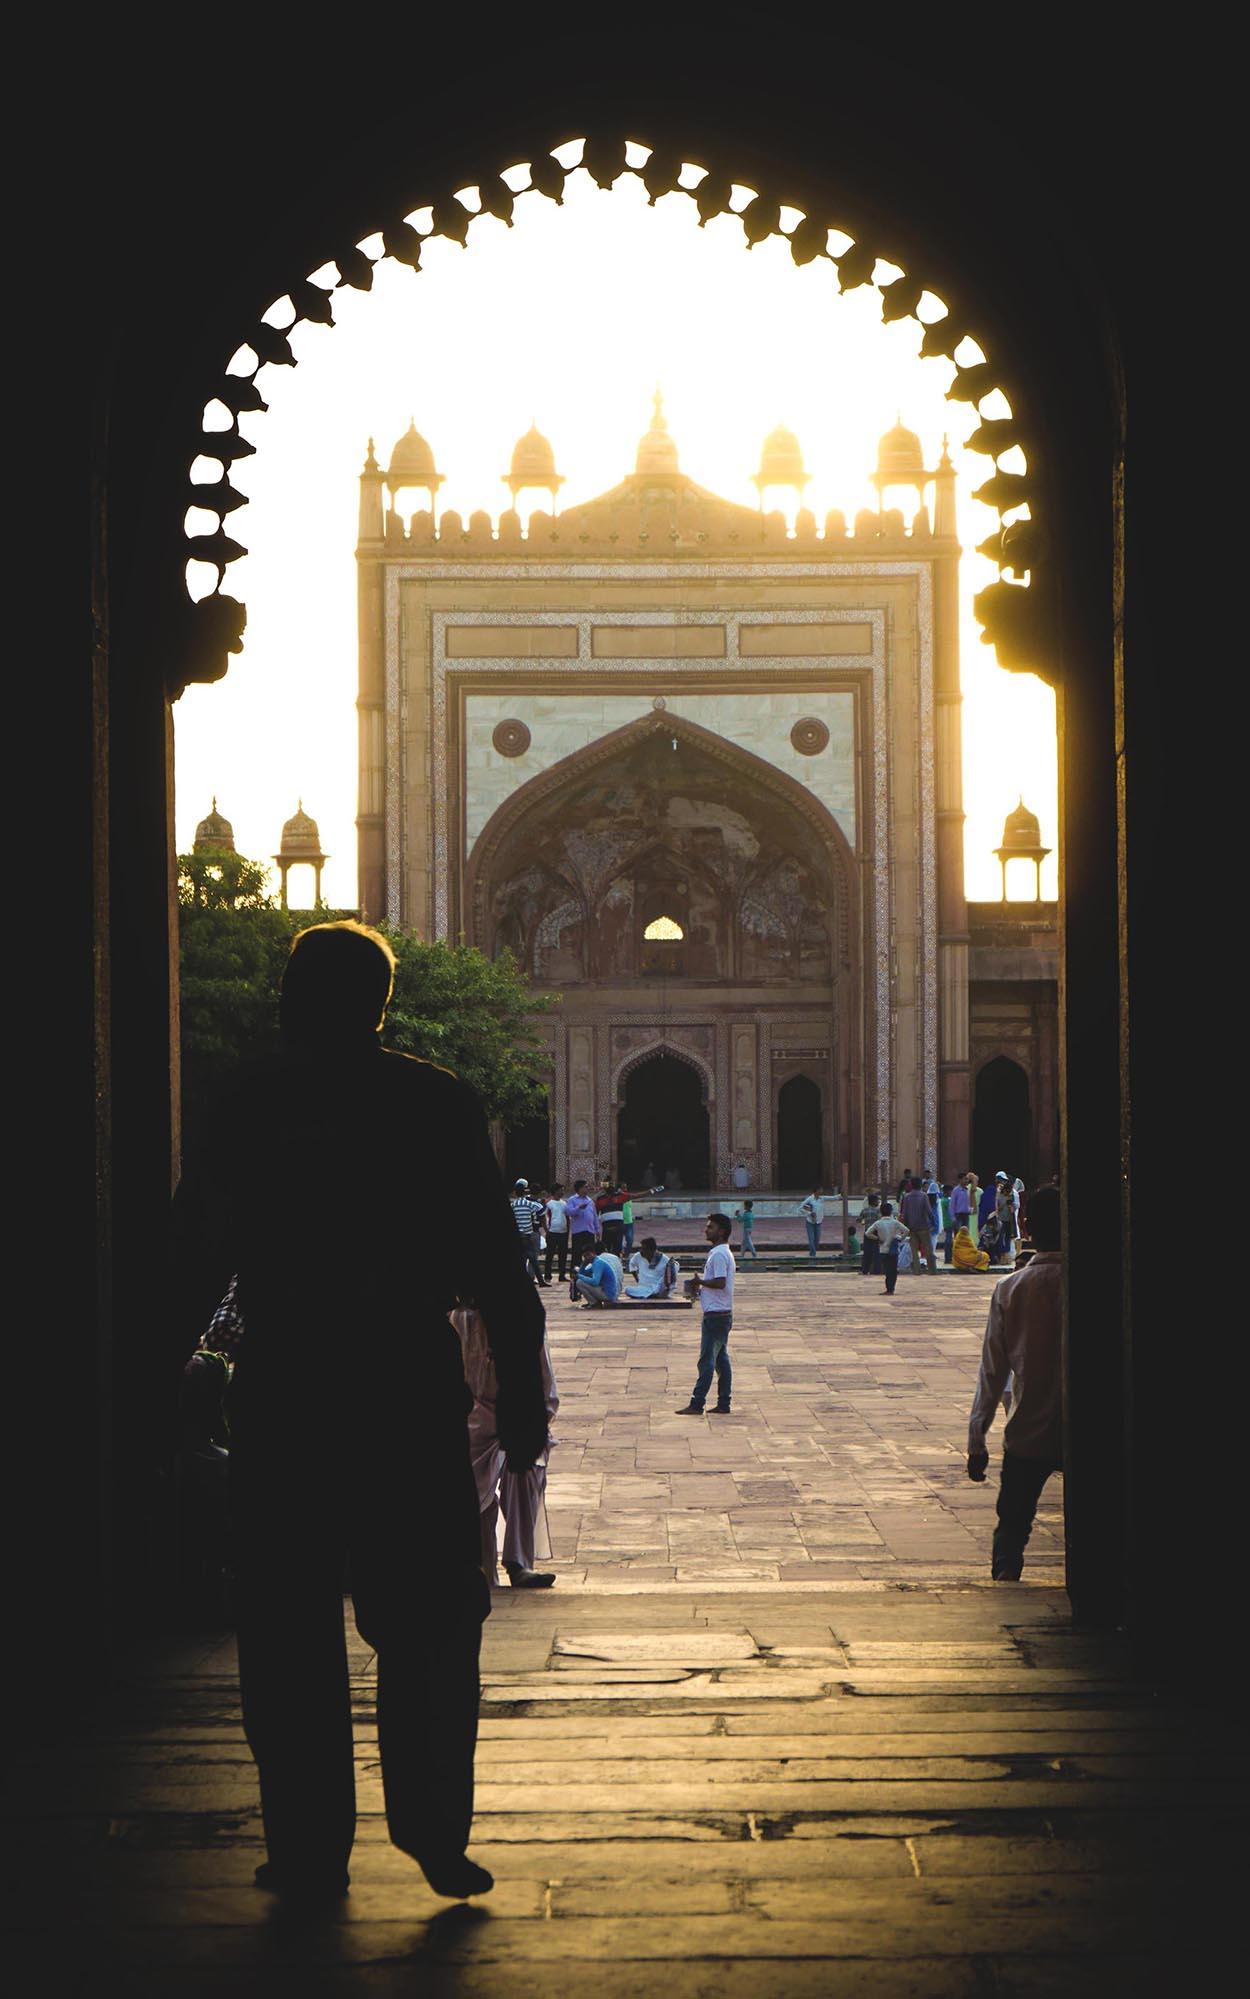 Shot inside the buland darwaza premises, A famous historical place of worship. A man enters the gates as the sun shines behind the opposite gate. A gleamy mood.